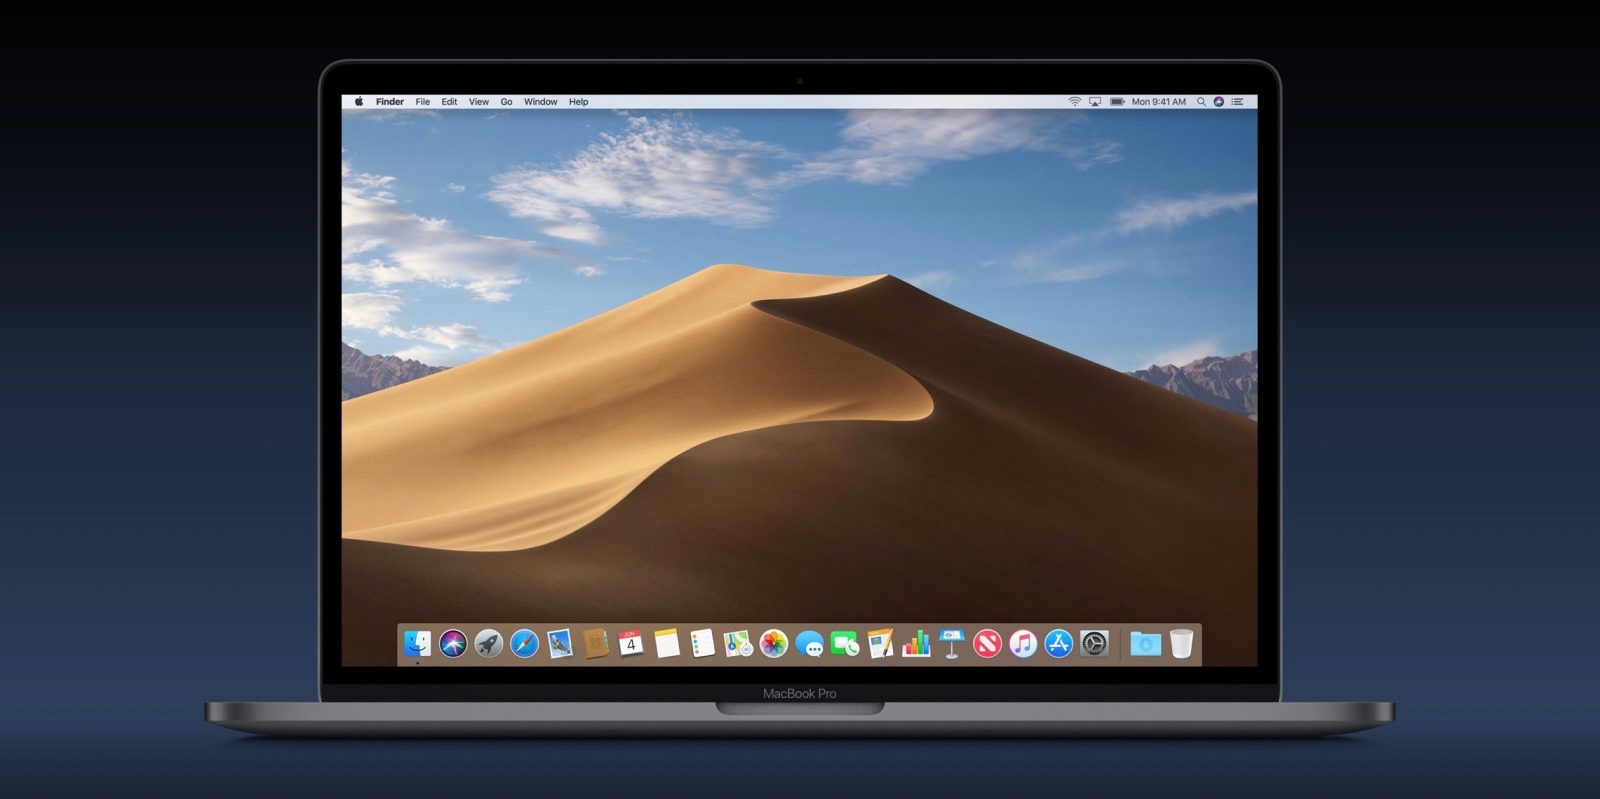 macos-mojave-macbook-pro.jpeg